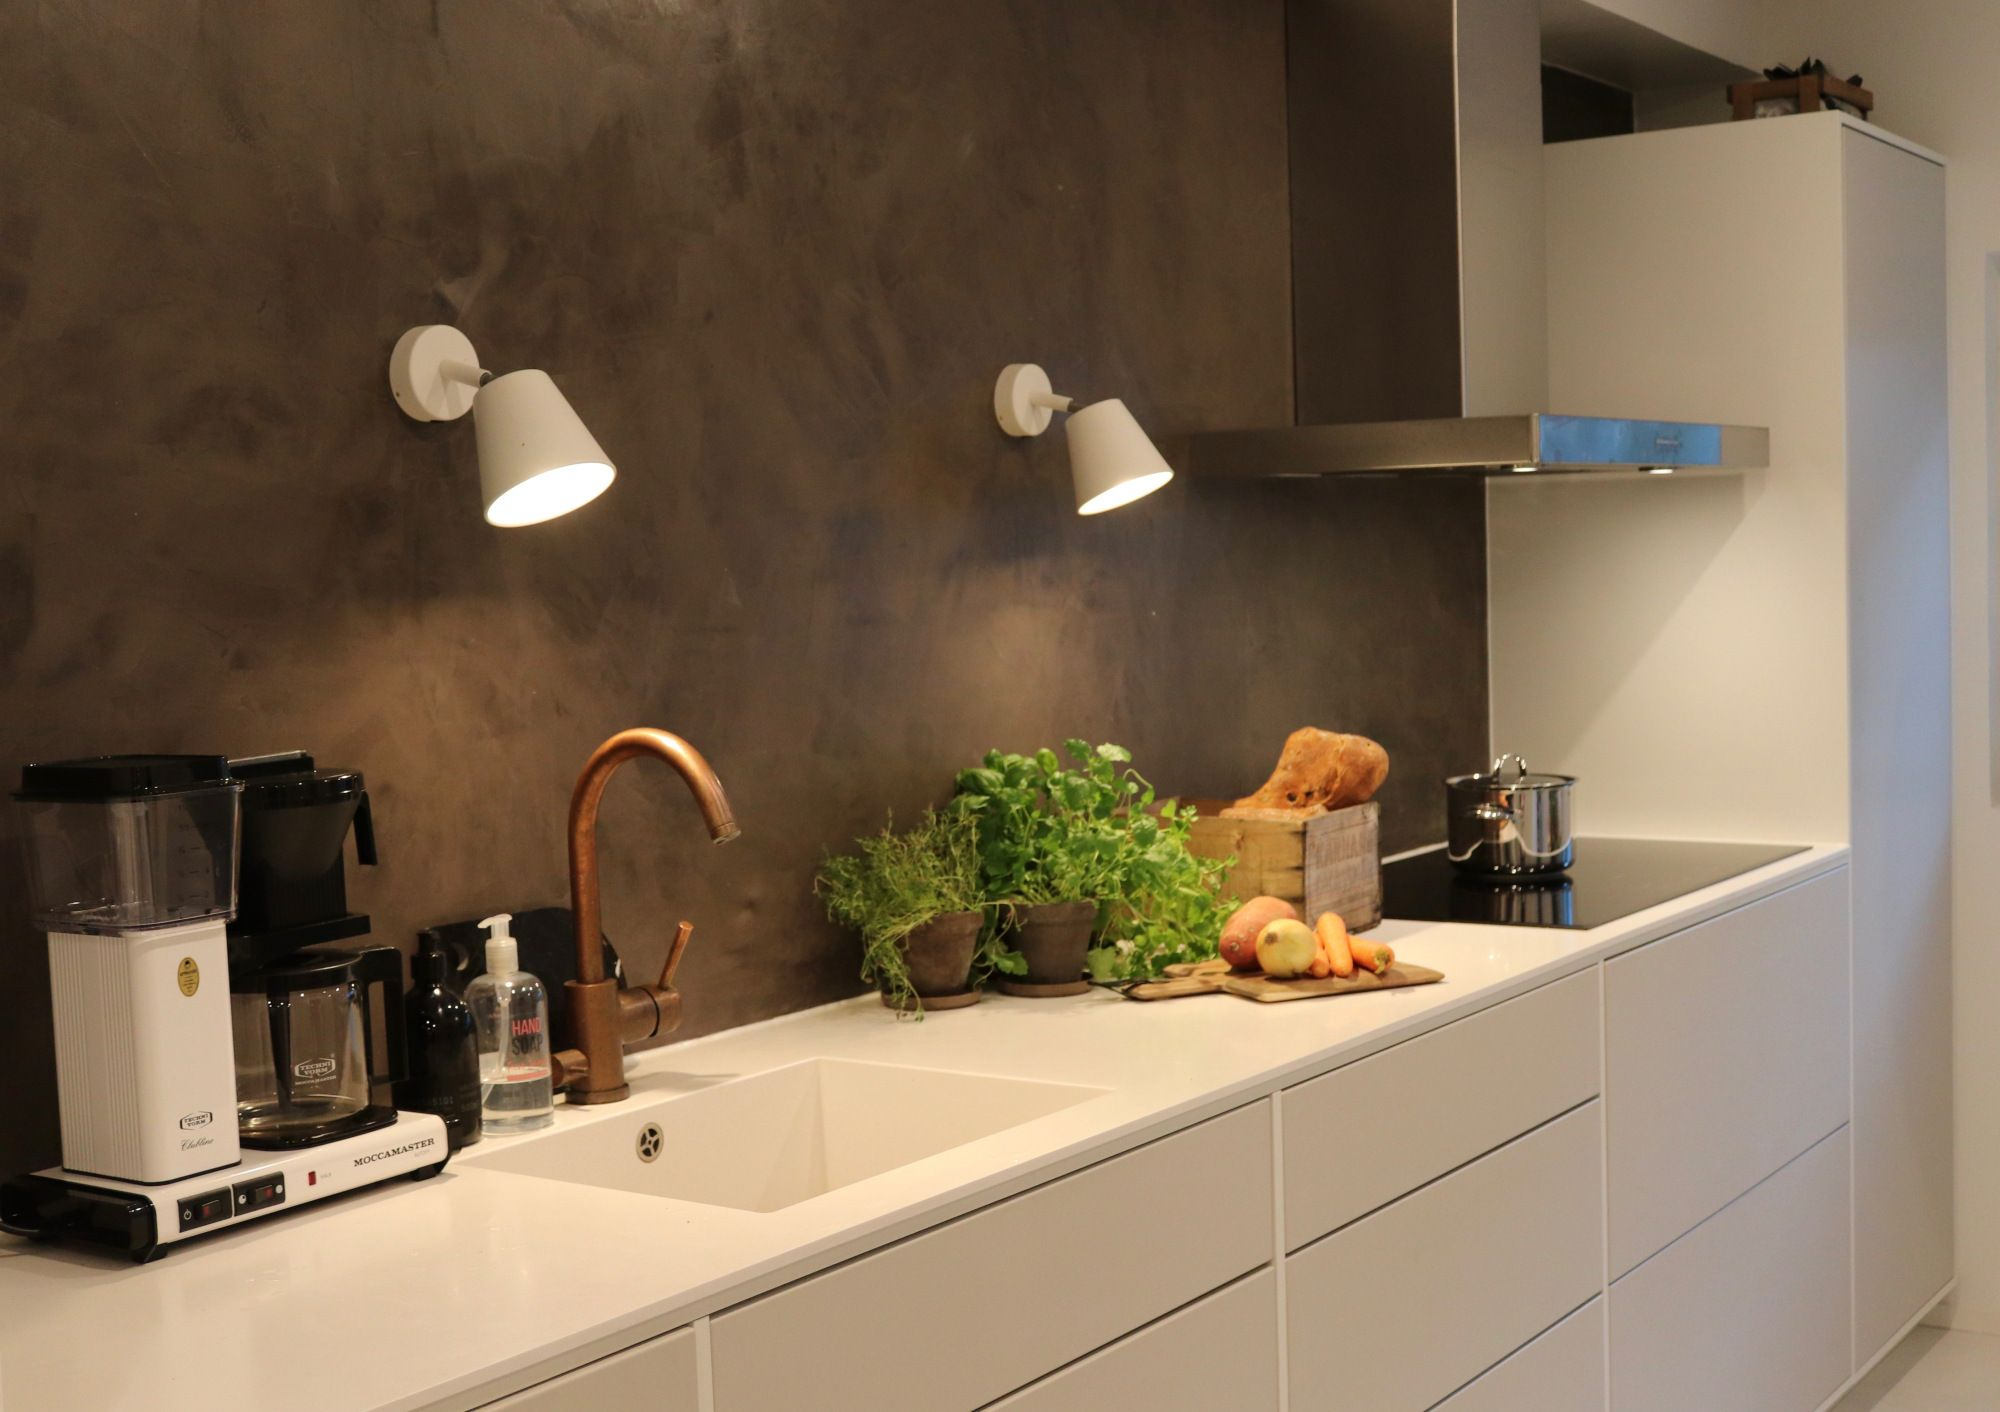 Kitchen ideas and inspo, microcement